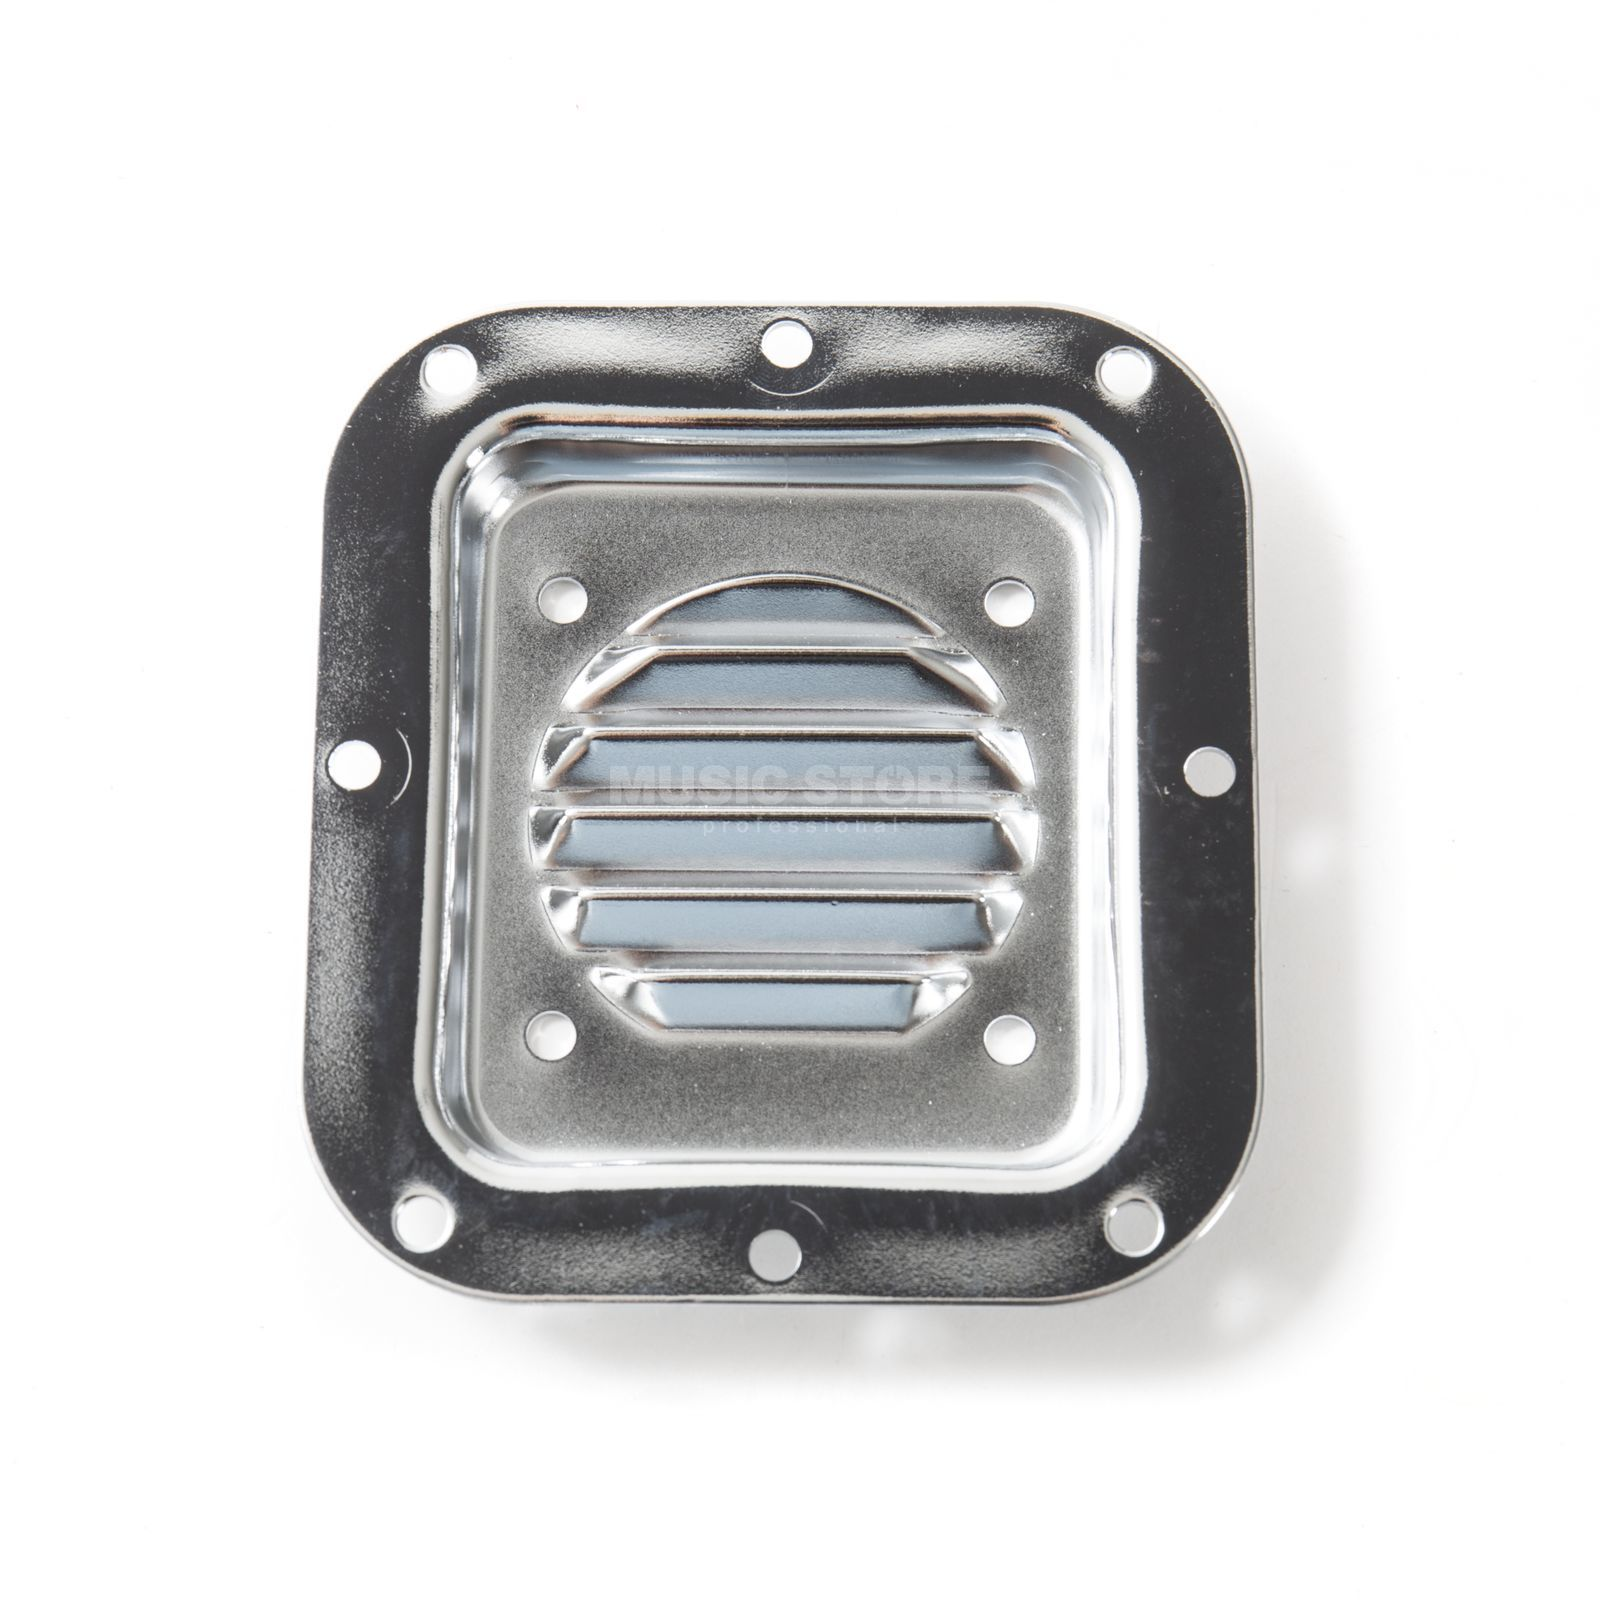 MUSIC STORE Ventilation Dish Medium Product Image